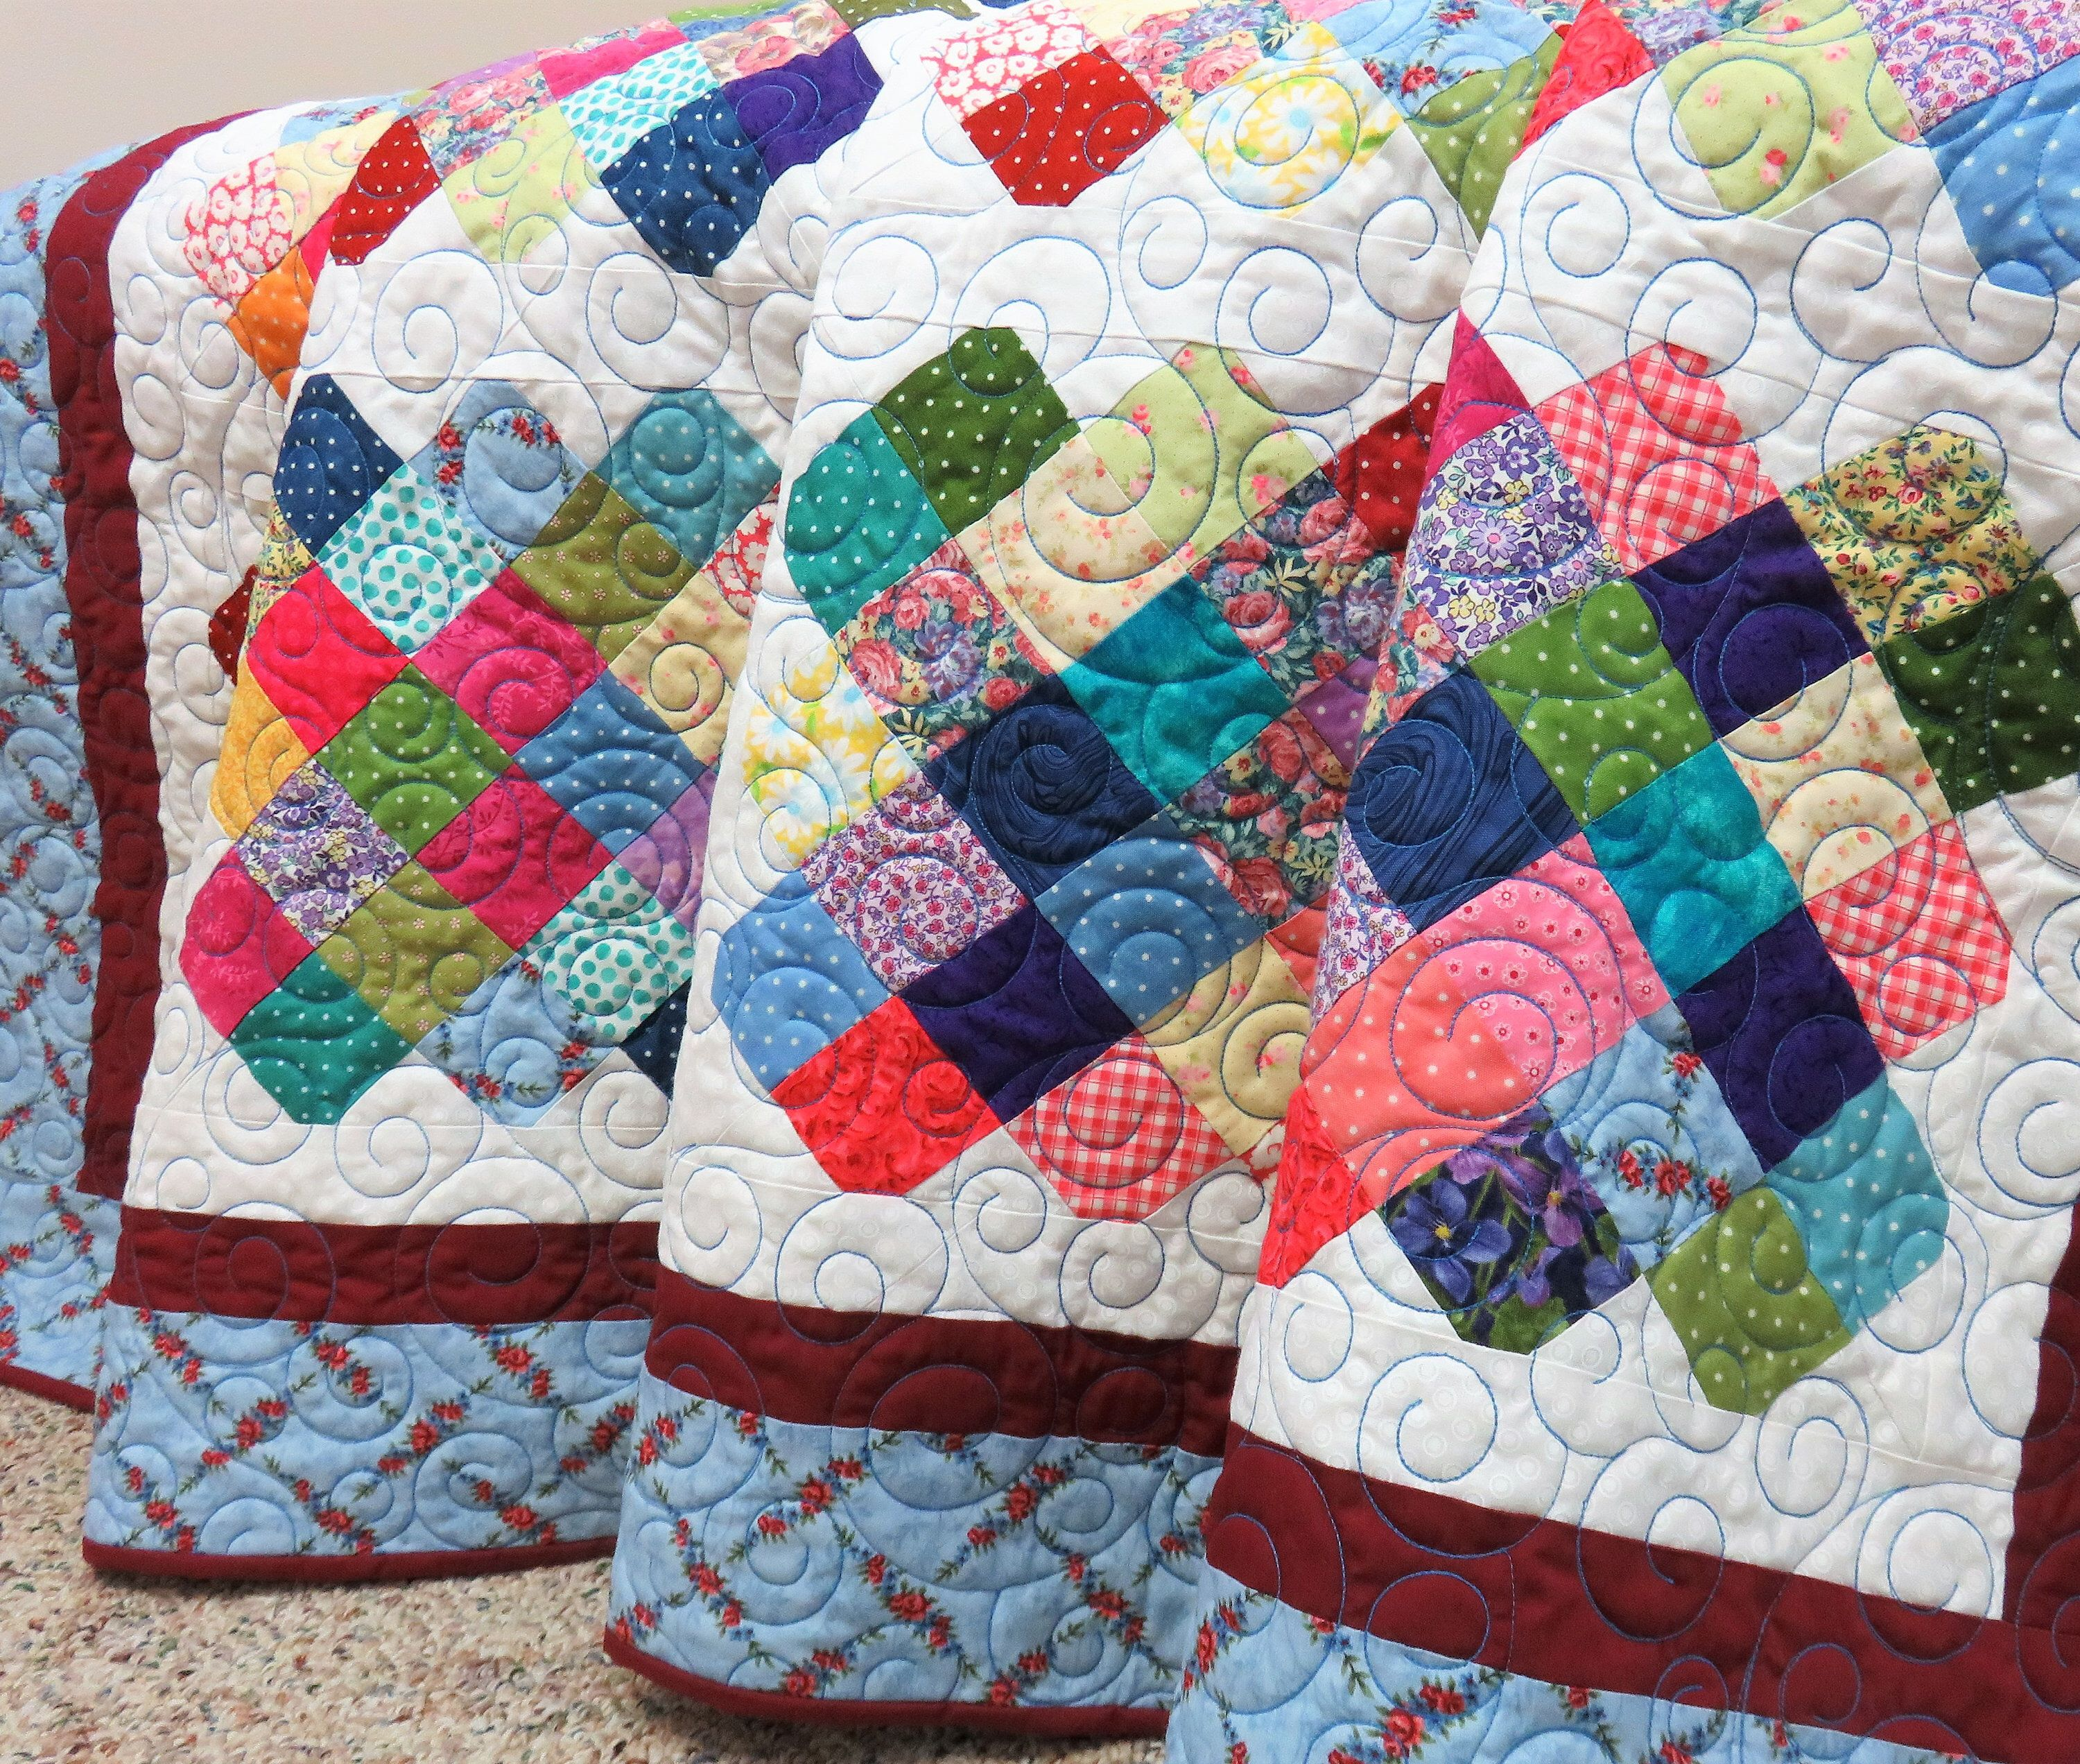 Handmade Quilt For Sale Twin Size Quilt Full Size Coverlet Double Quilt Queen Coverlet Large Blanket Throw Quilt Lap Blanket Floral In 2020 Handmade Quilts For Sale Twin Quilt Size Handmade